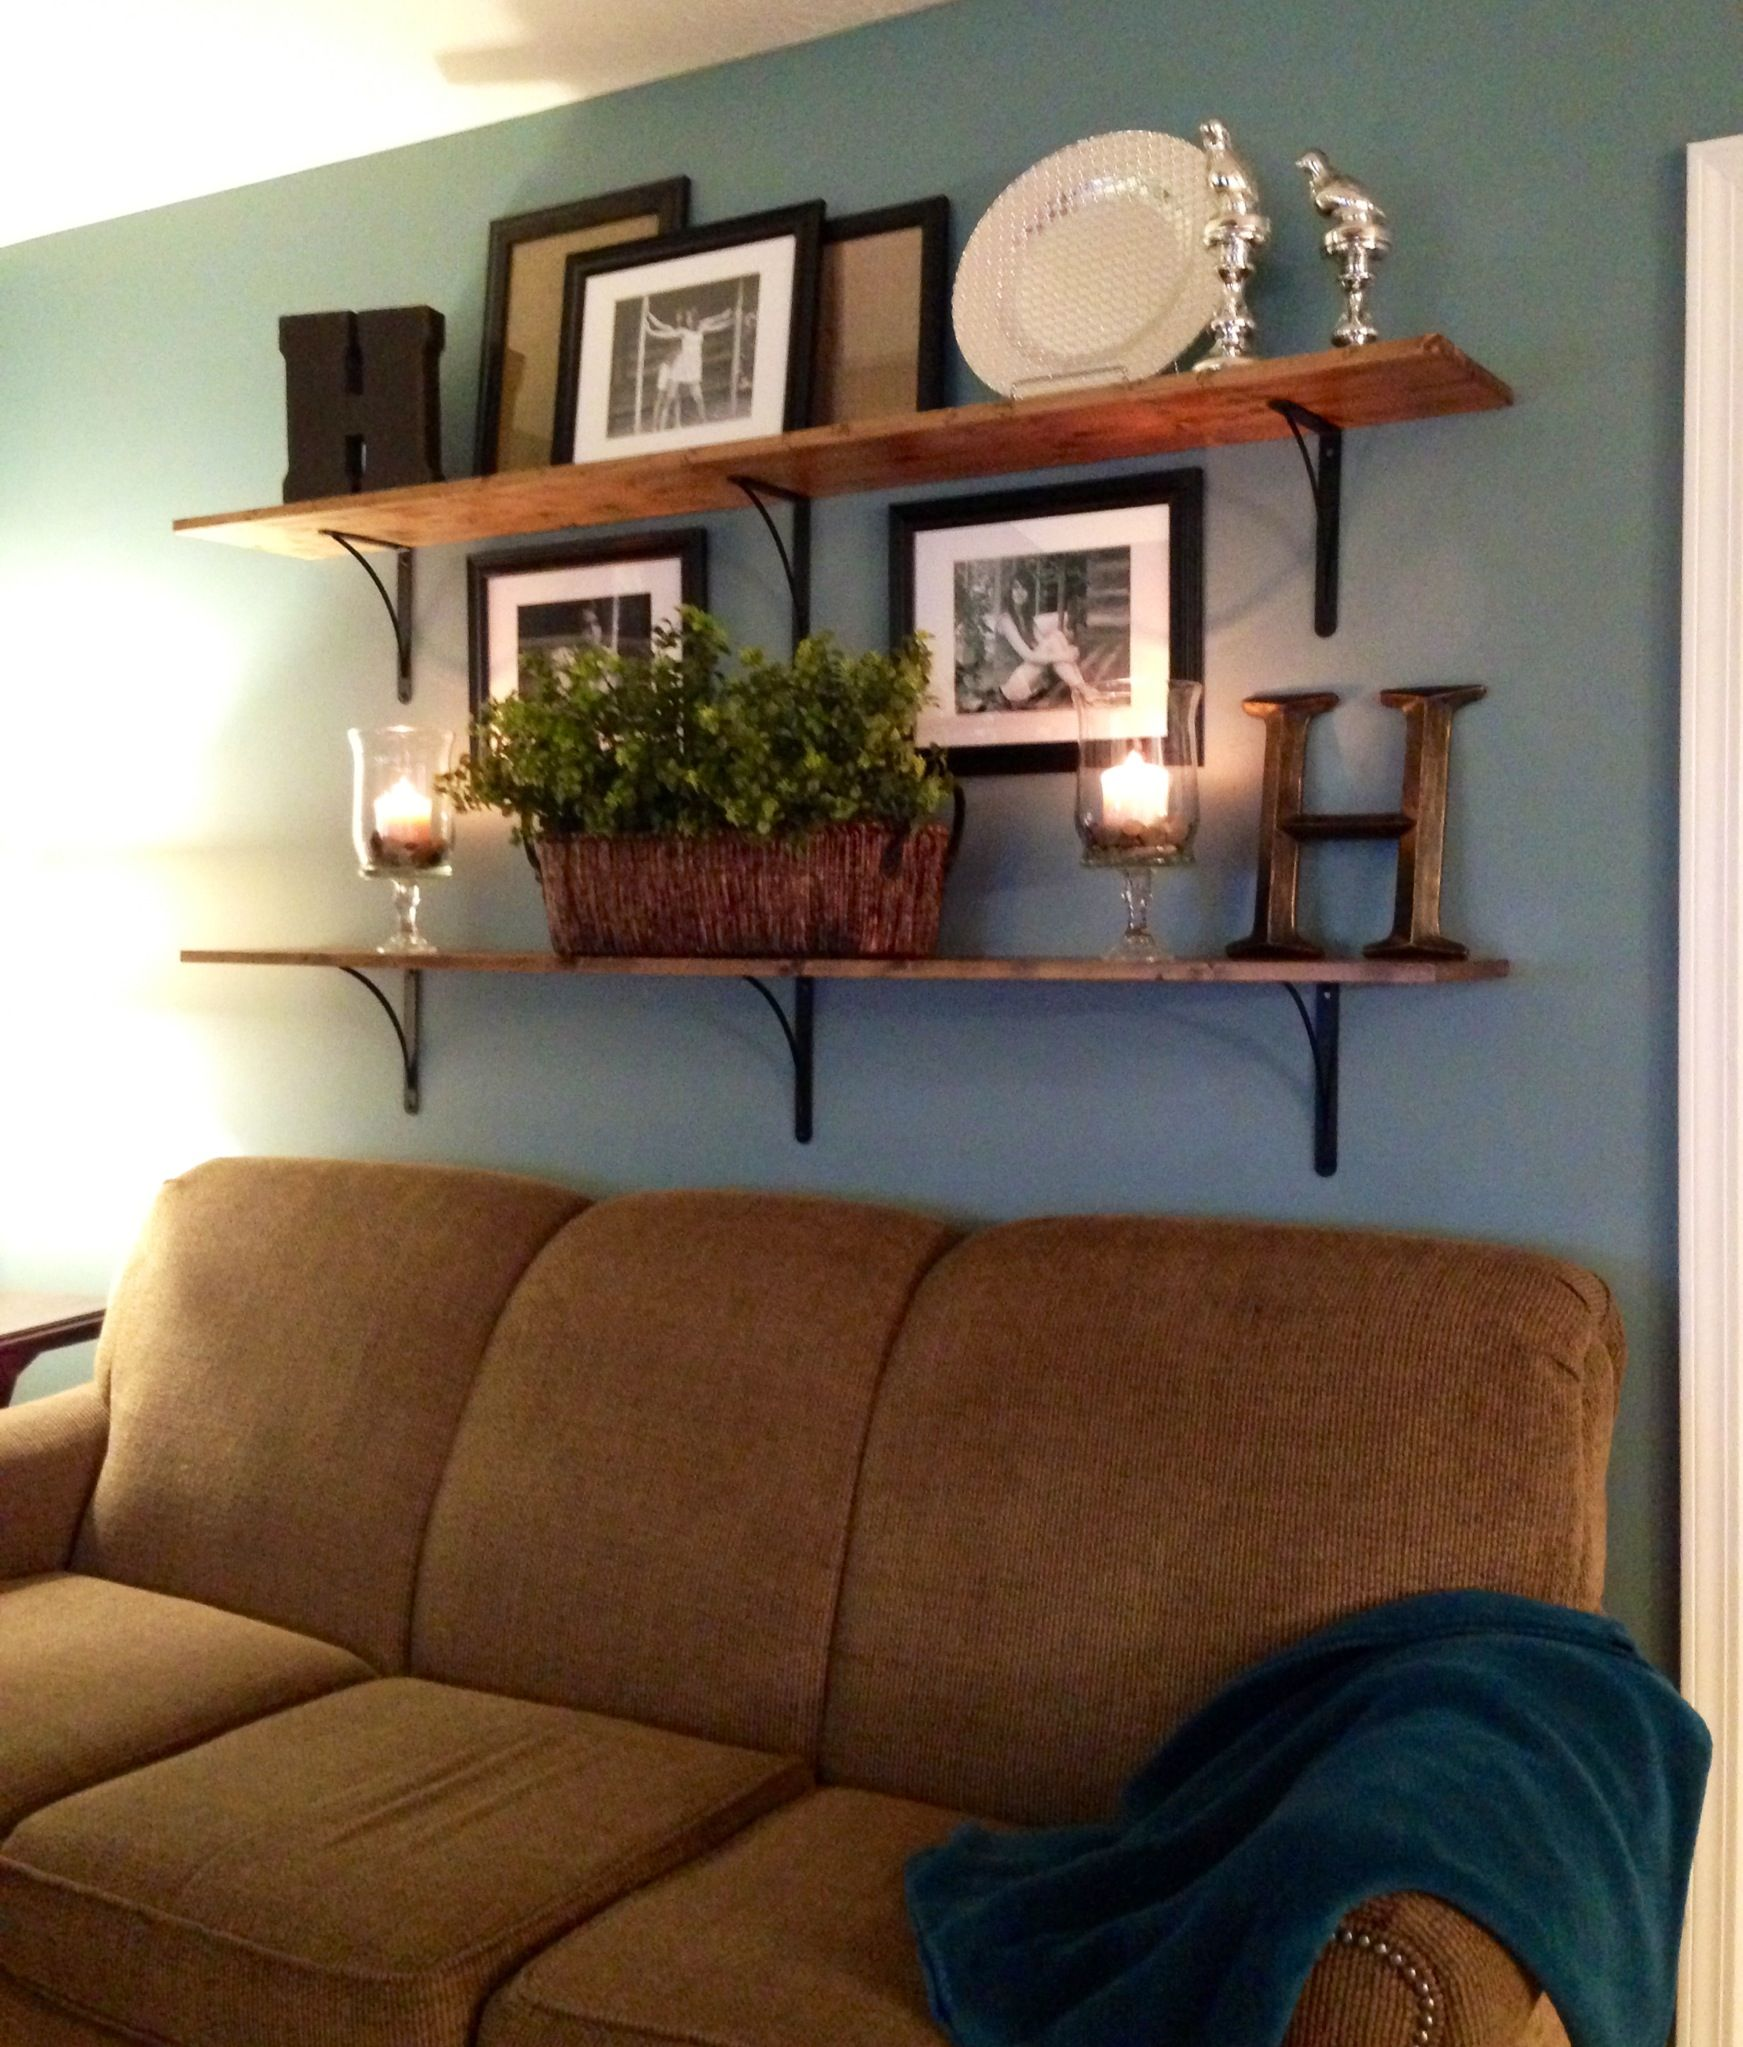 Shelves above sofa home living room pinterest for Decor over couch